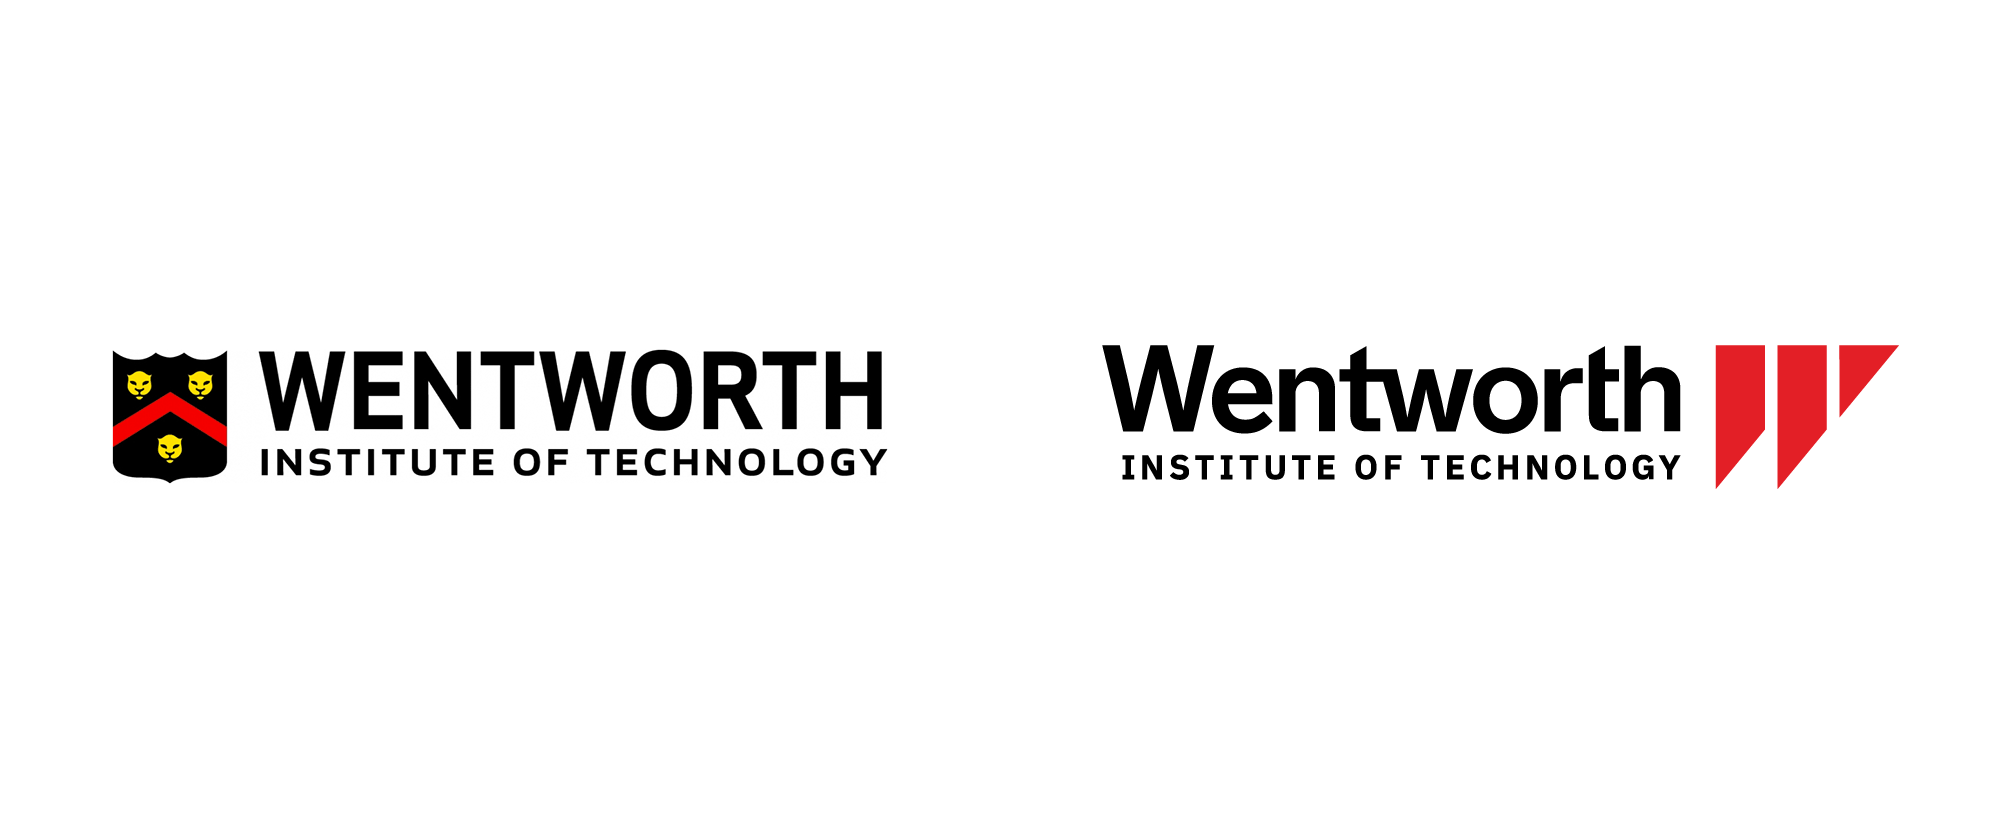 New Logo for Wentworth Institute of Technology by Stoltze Design